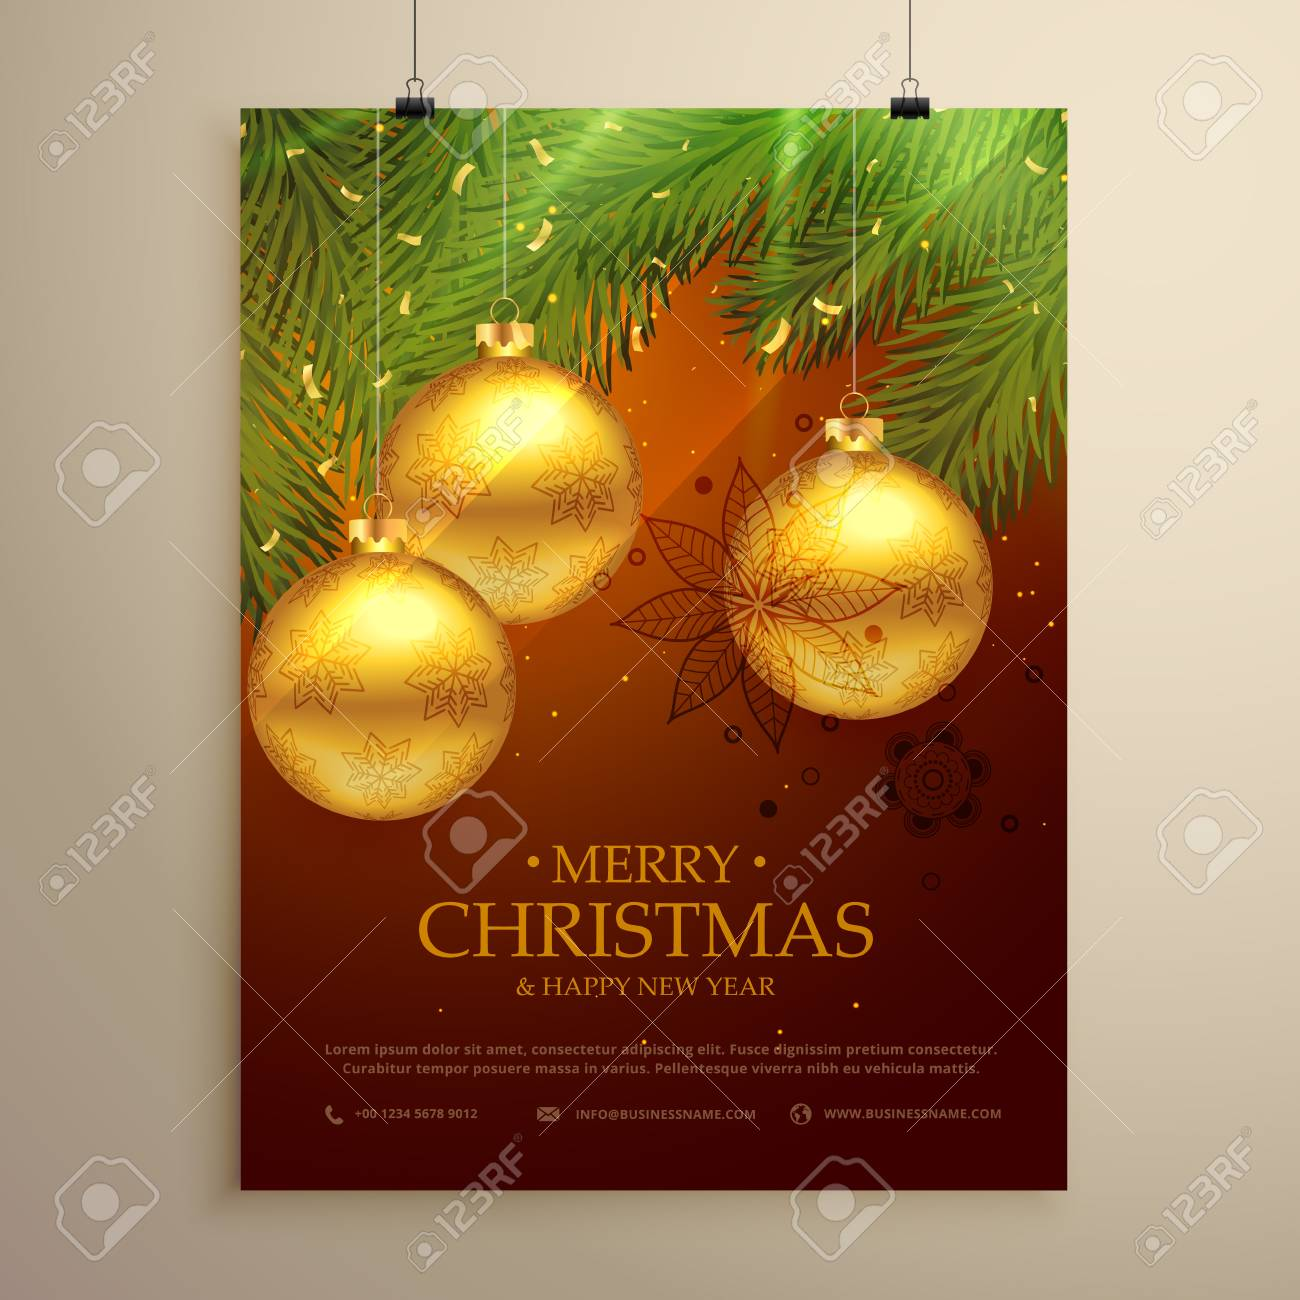 Beautiful Merry Christmas Background Design Flyer Template Royalty ...